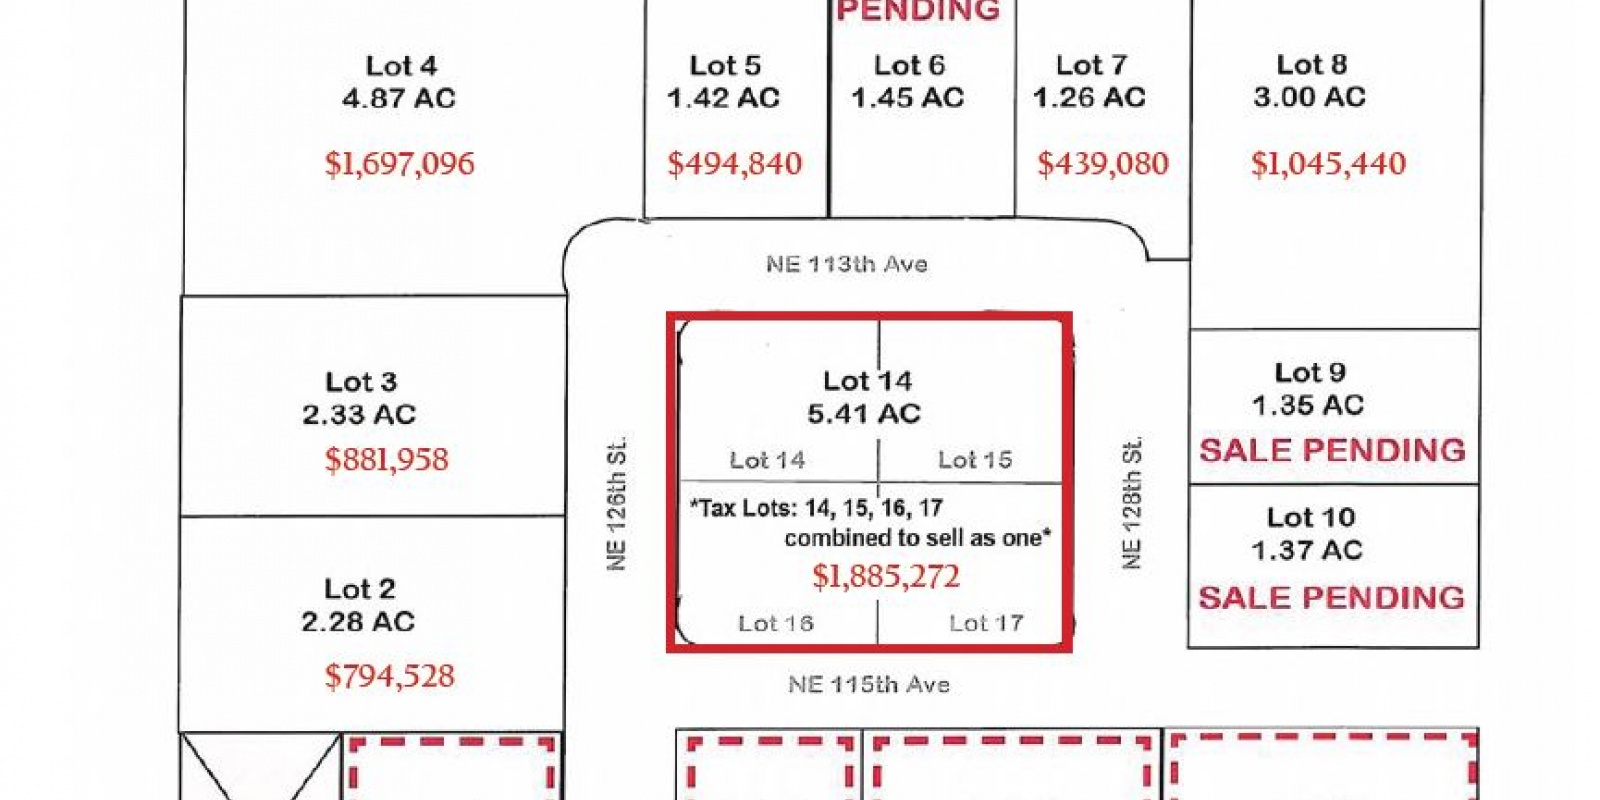 Hwy 503 at NE 125th St. Vancouver, WA 98662, ,Land,For Sale,GLENWOOD INDUSTRIAL PARK,Hwy 503 at NE 125th St. Vancouver, WA 98662,1327